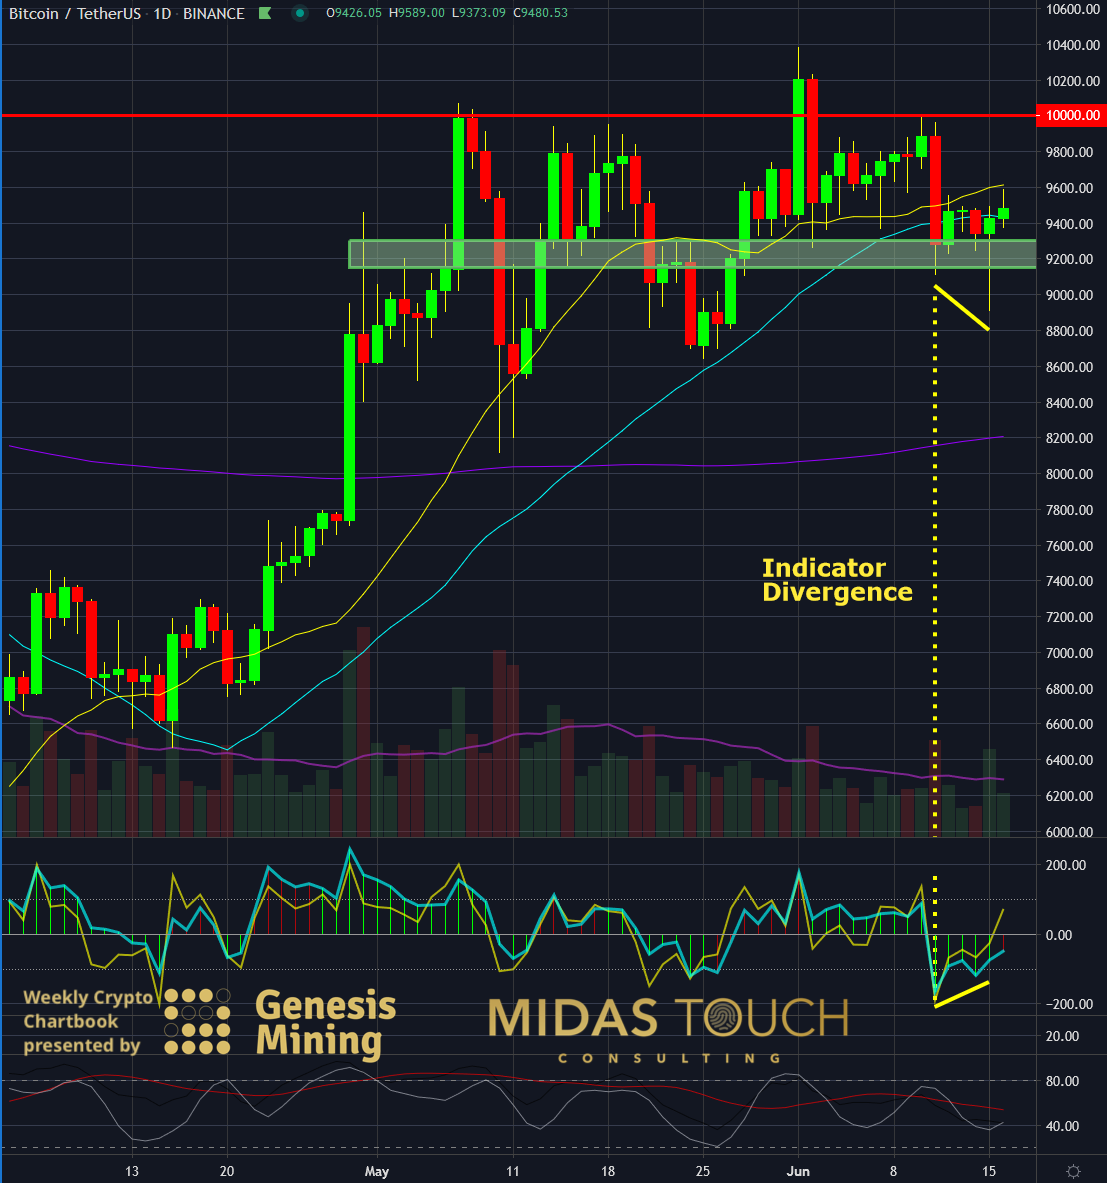 BTC-USDT, daily chart as of June 16th, 2020